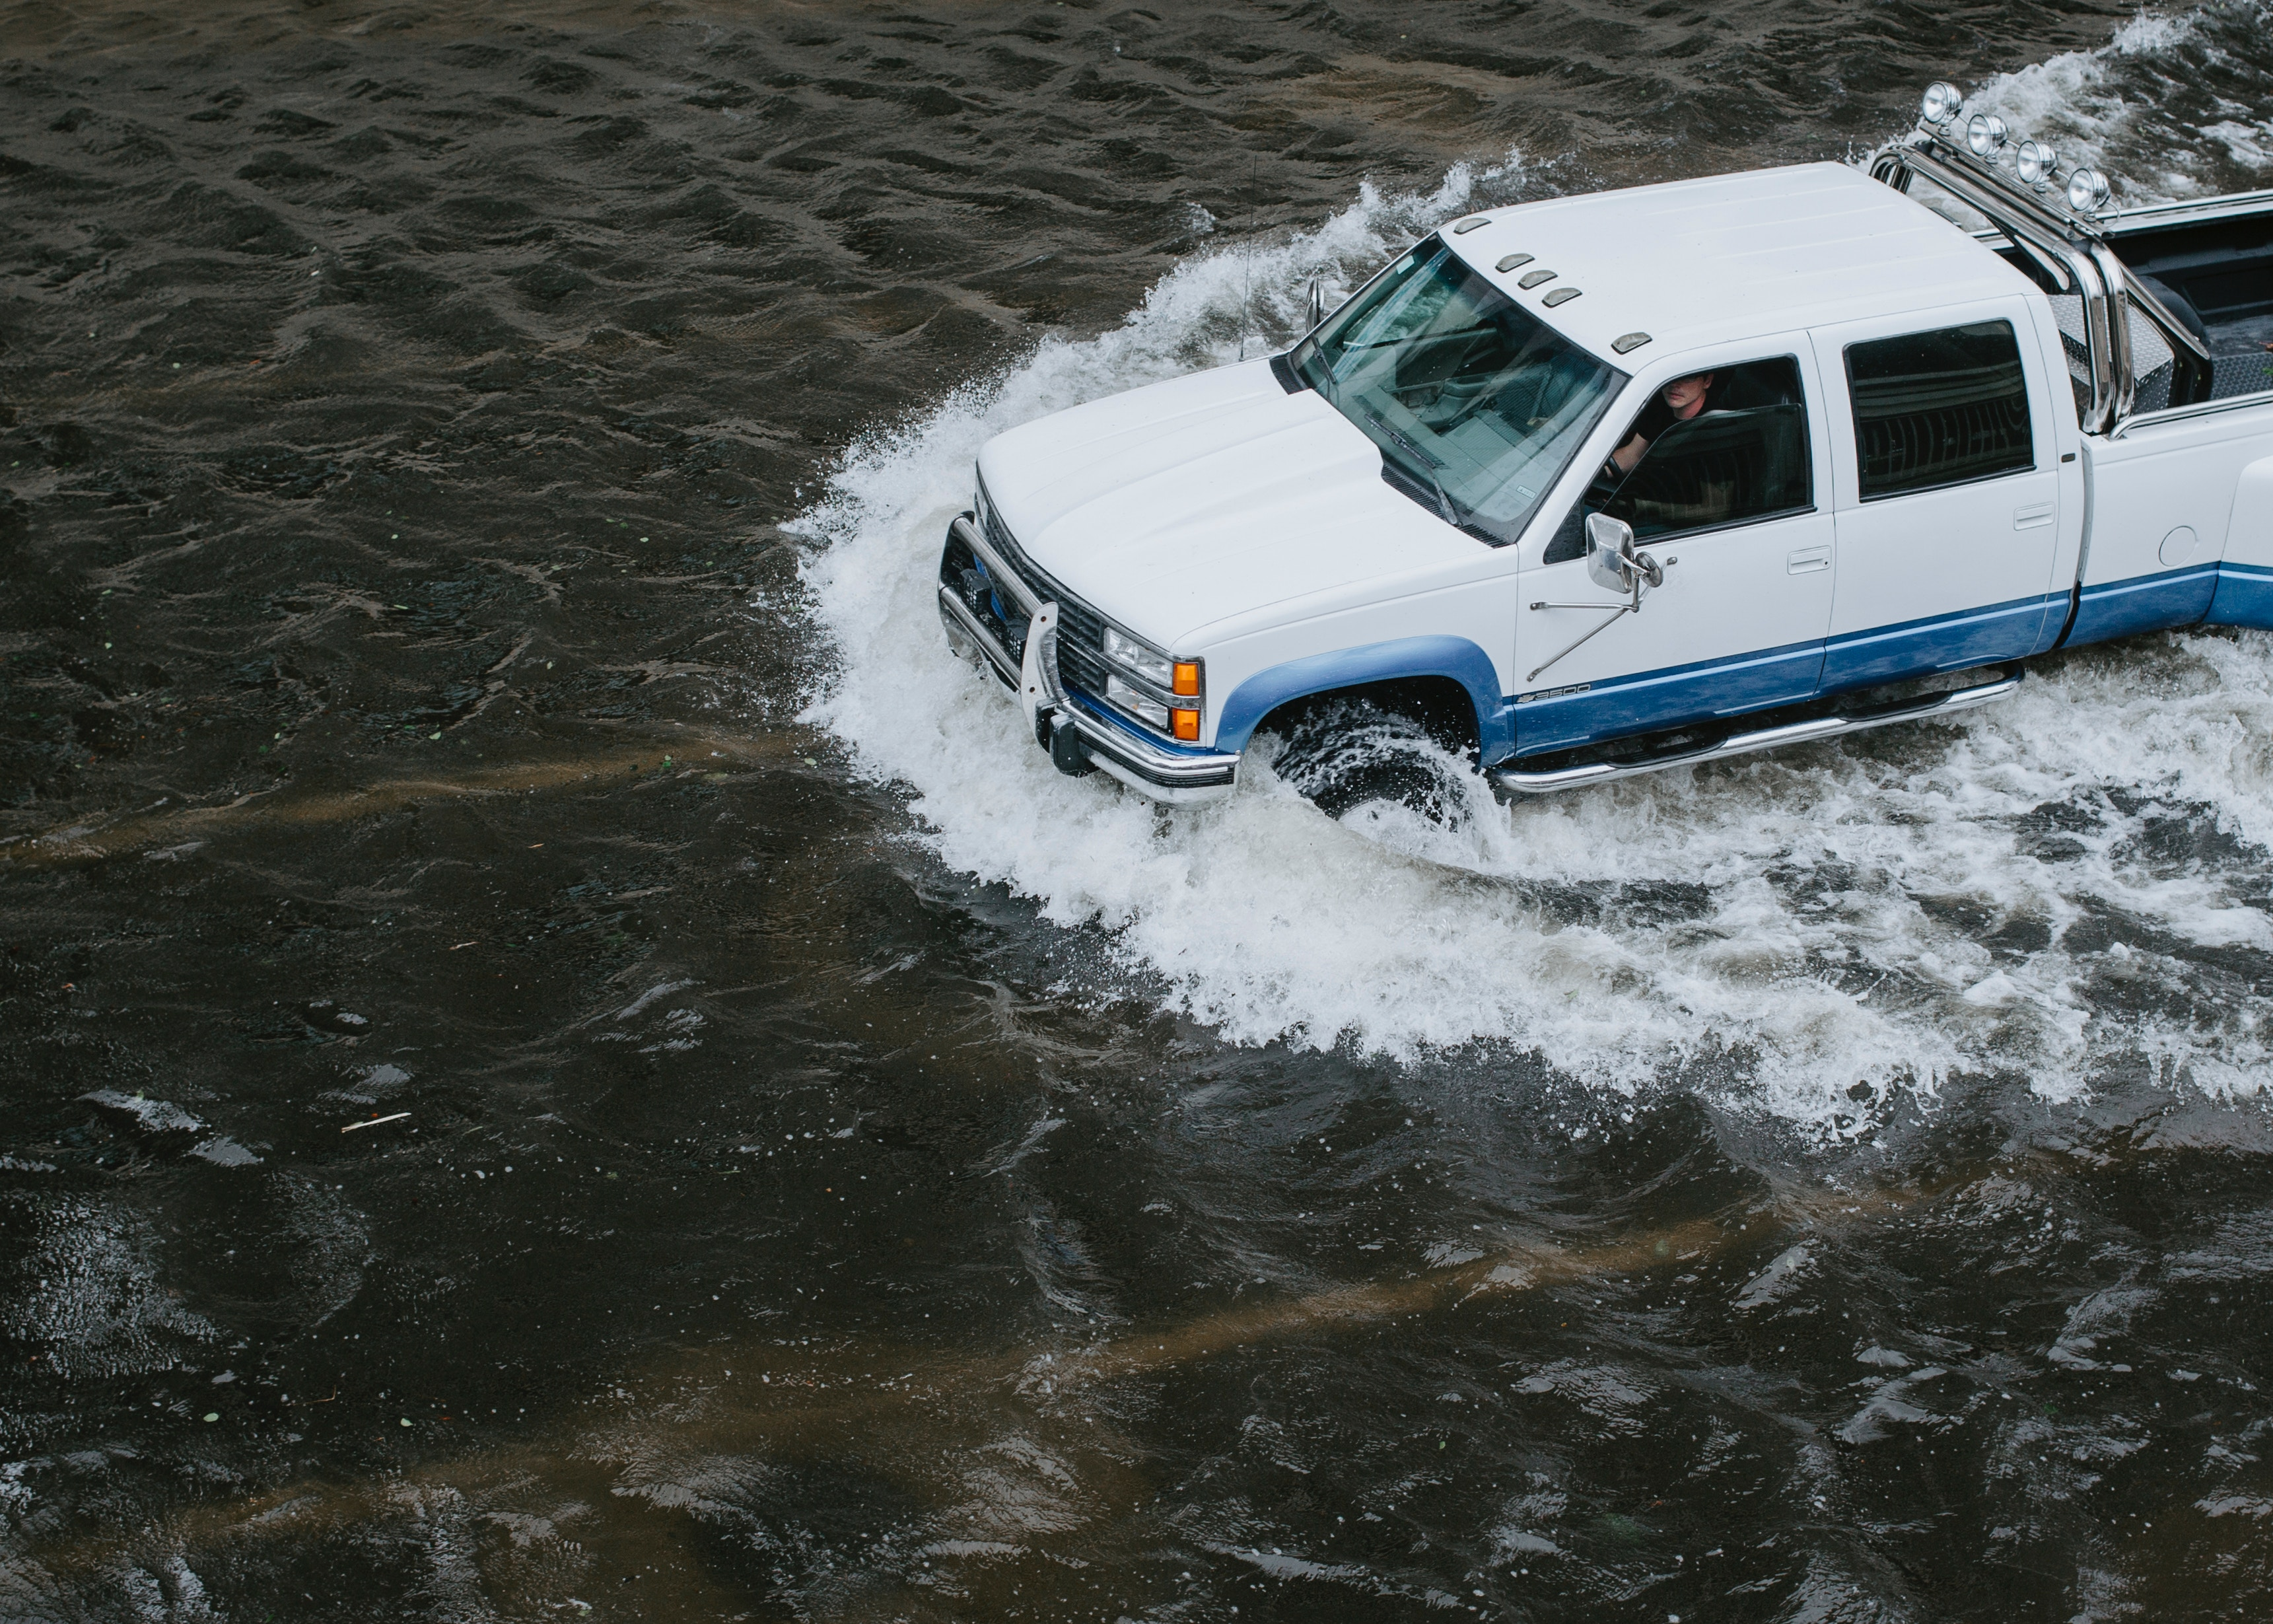 A car in flood waters